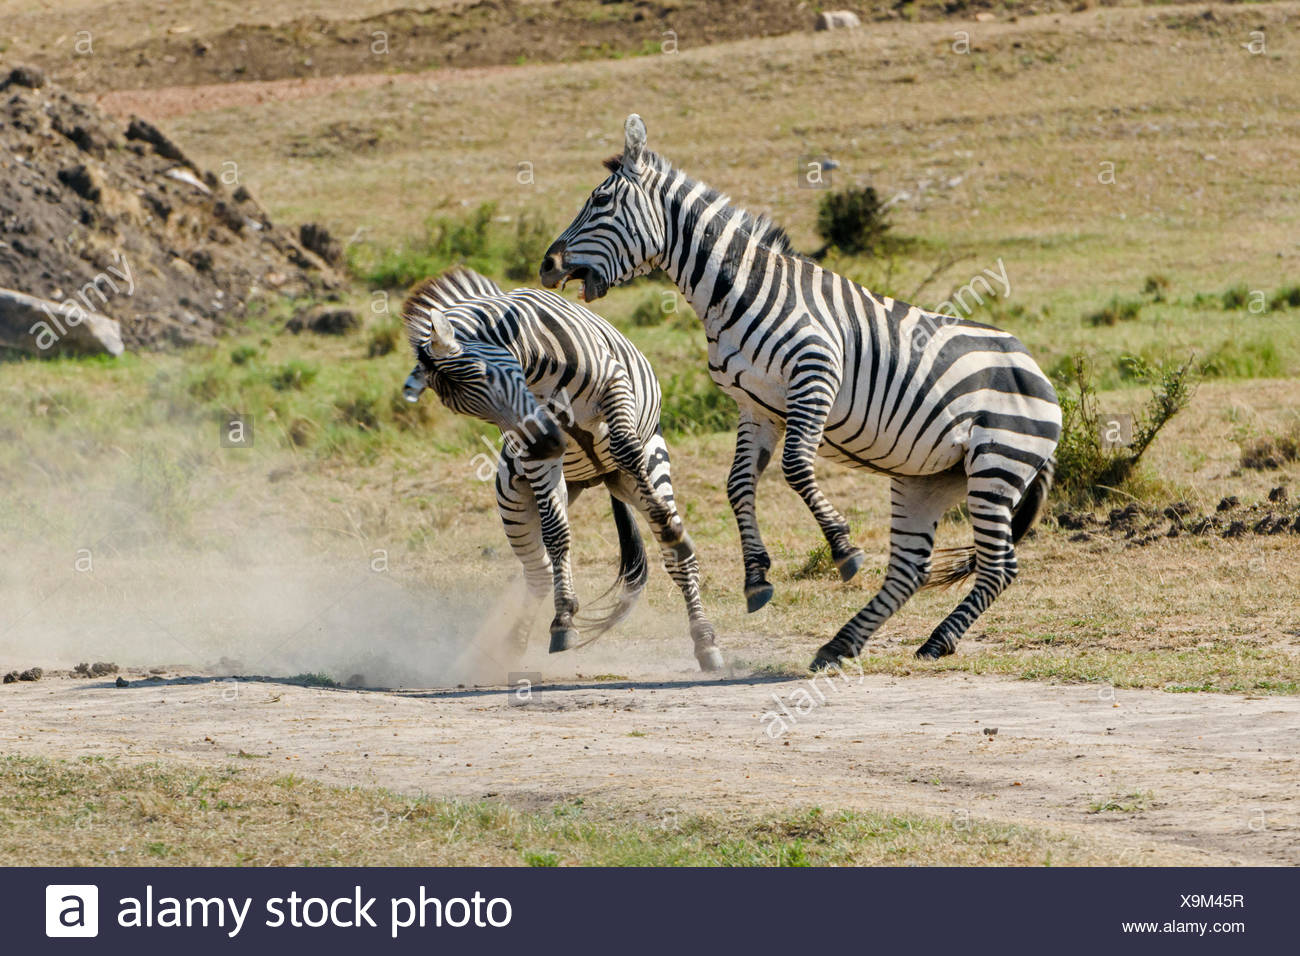 Zebras (Equus quagga), stallions fighting, Maasai Mara National Reserve, Narok County, Kenya Stock Photo